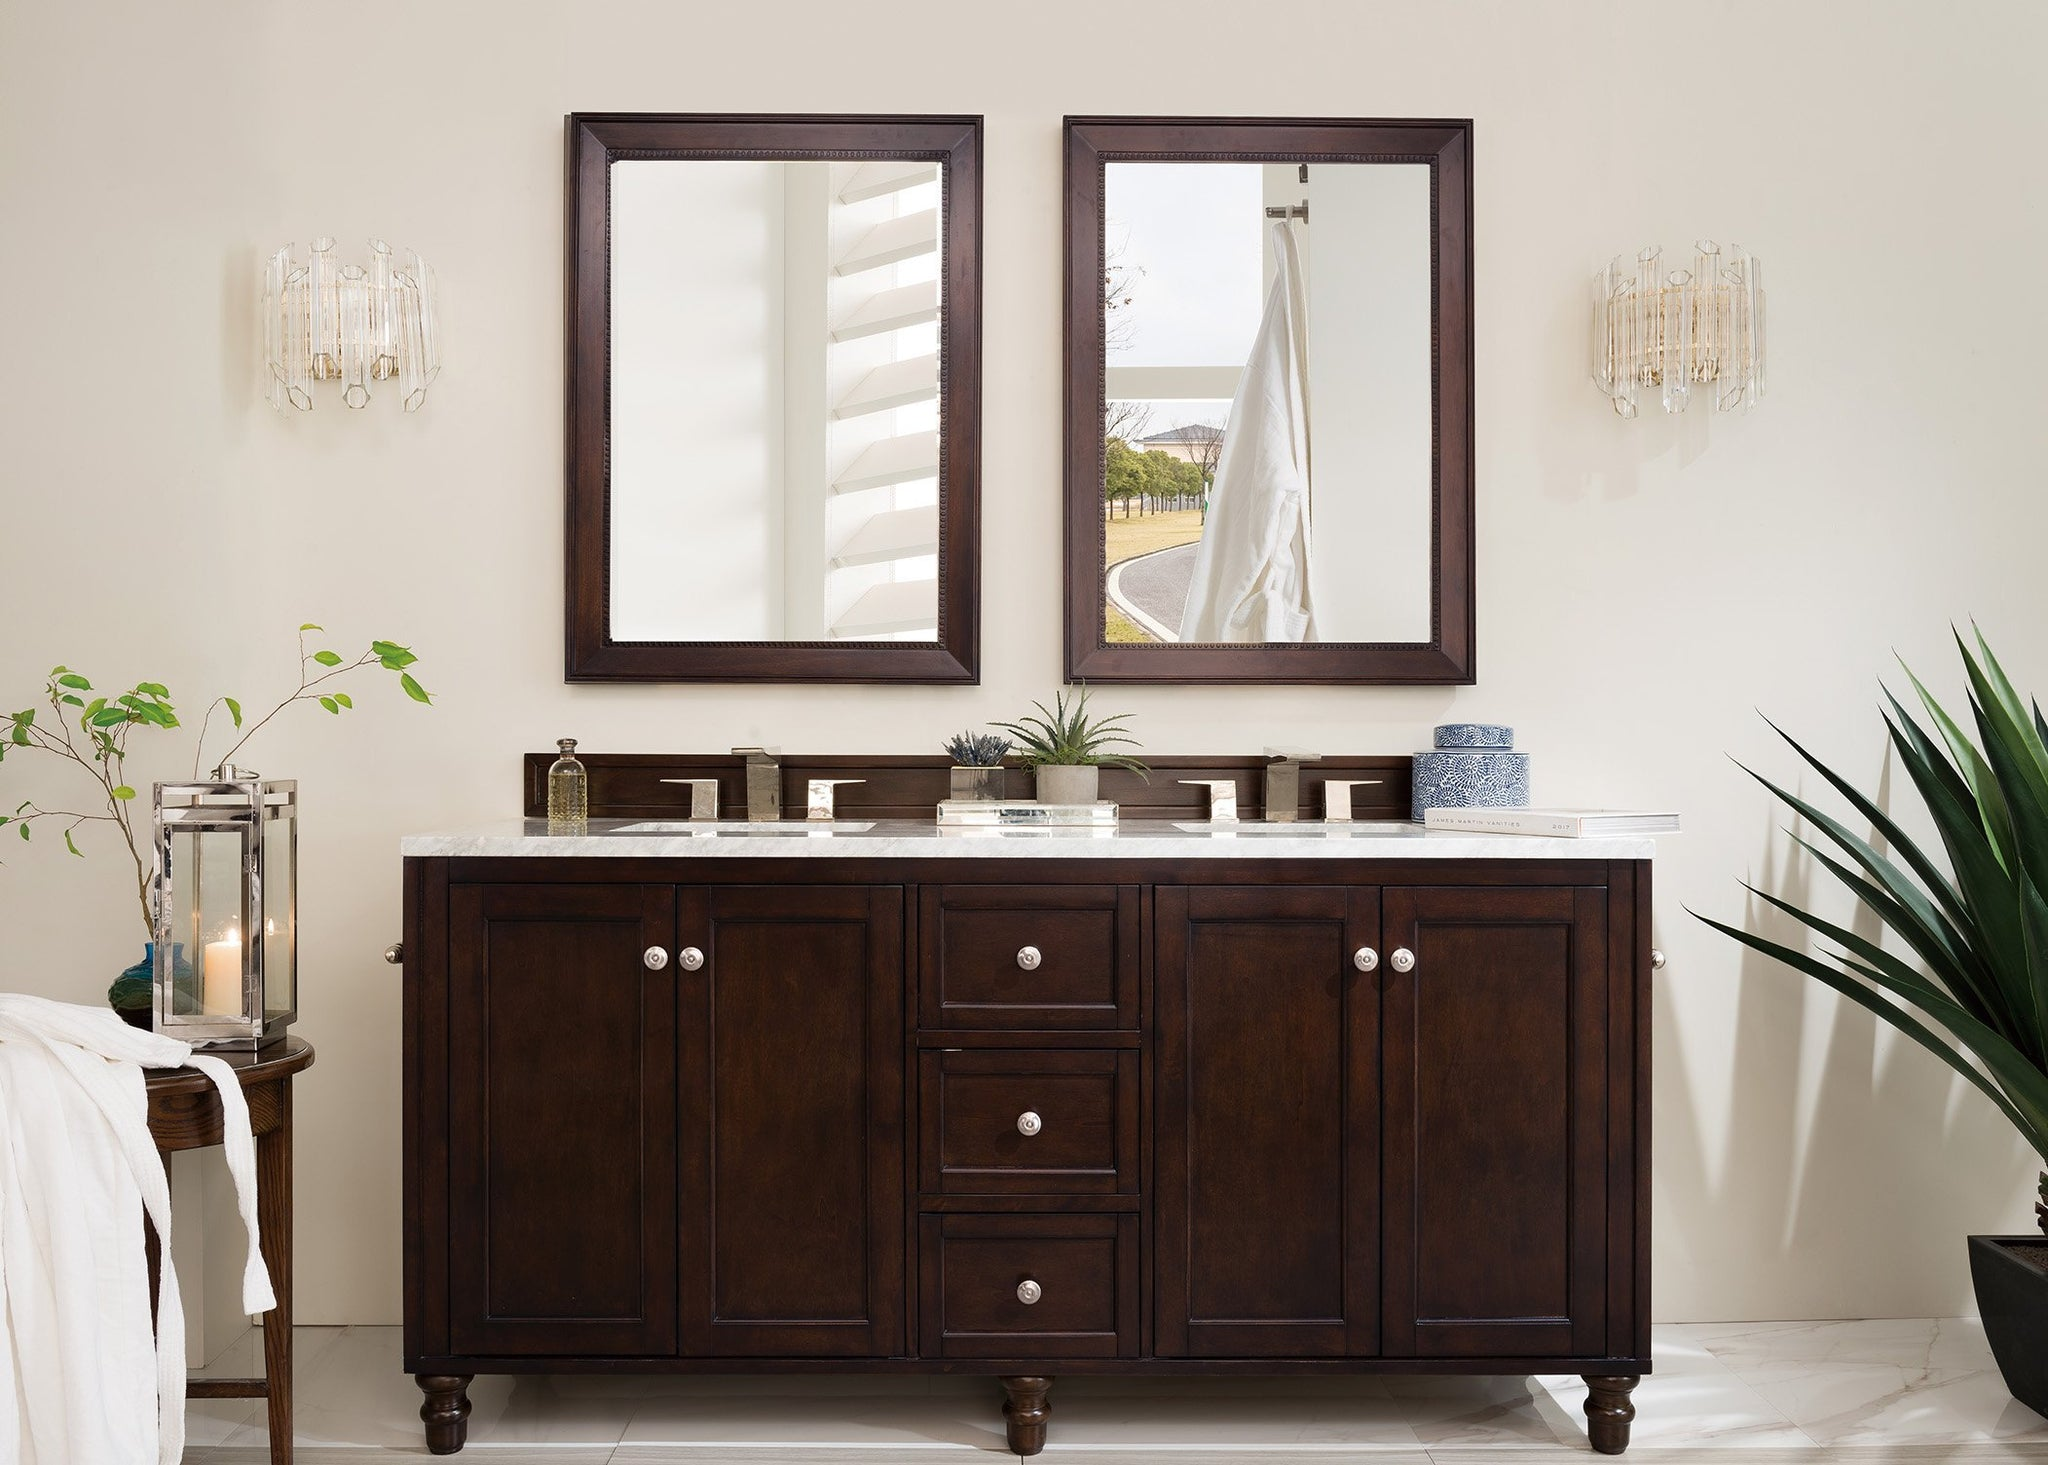 "Copper Cove Encore 72"" Double Bathroom Vanity Double bathroom Vanity James Martin Vanities"